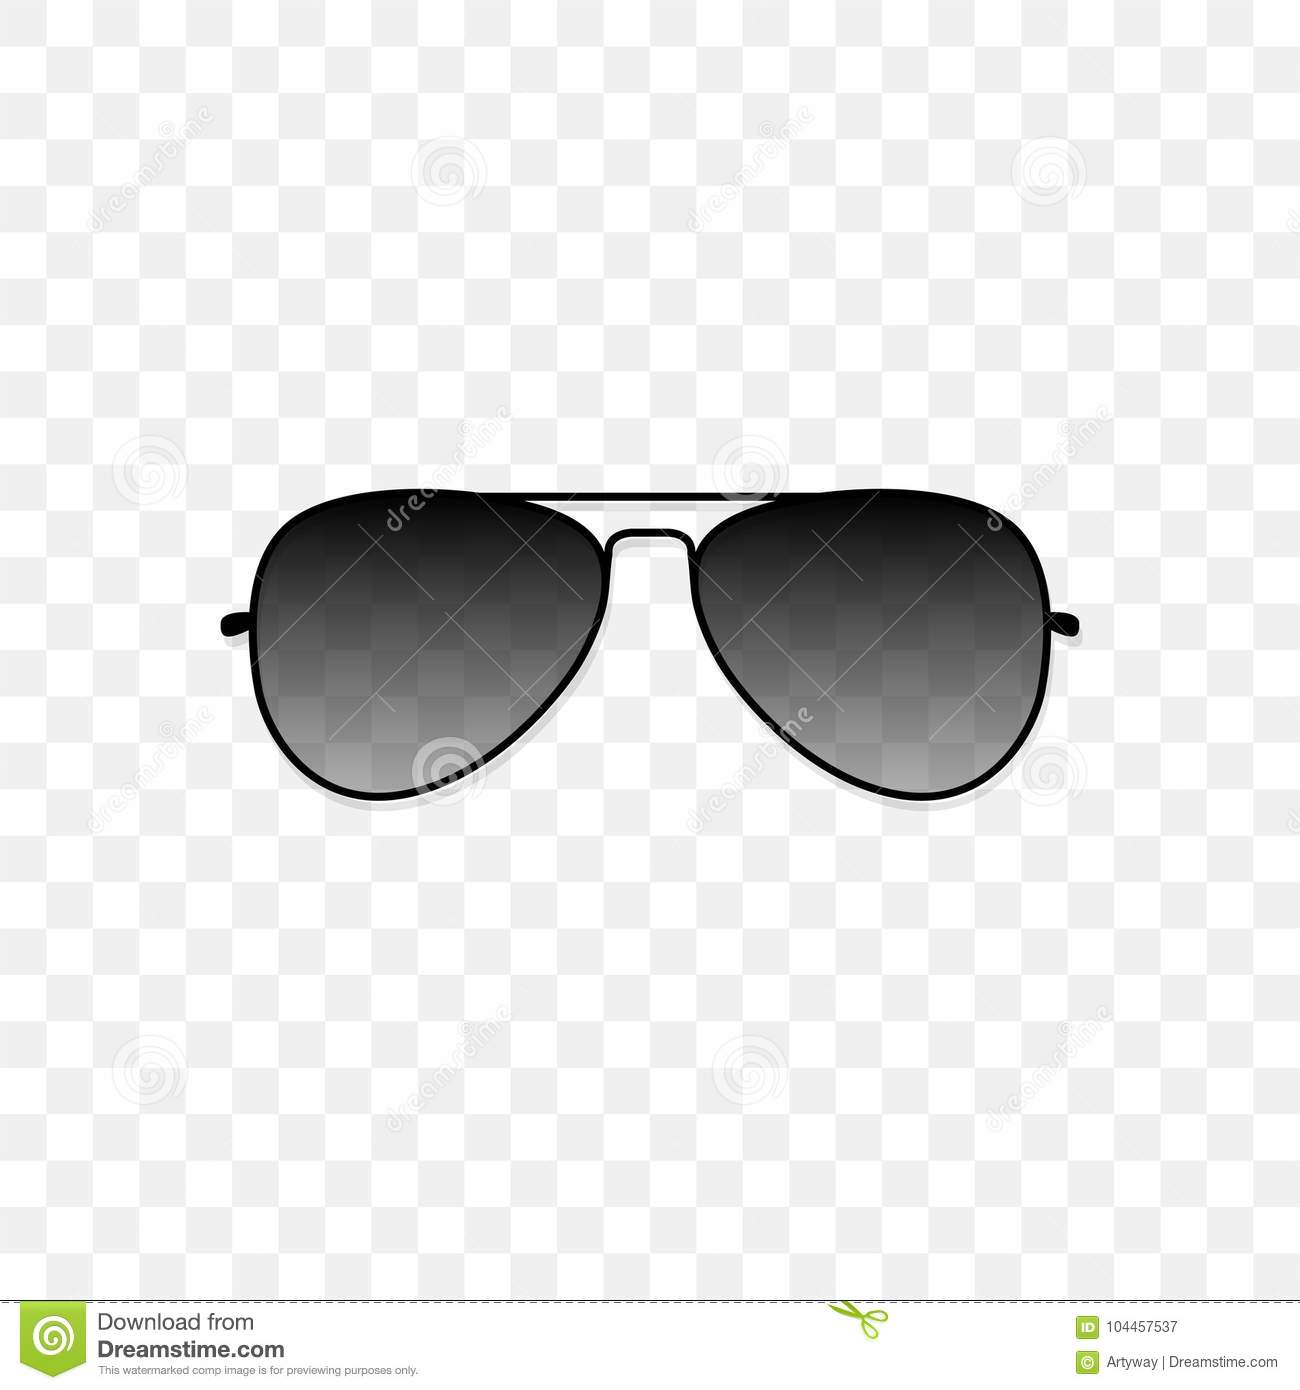 Realistic Sunglasses With A Translucent Black Glass On A